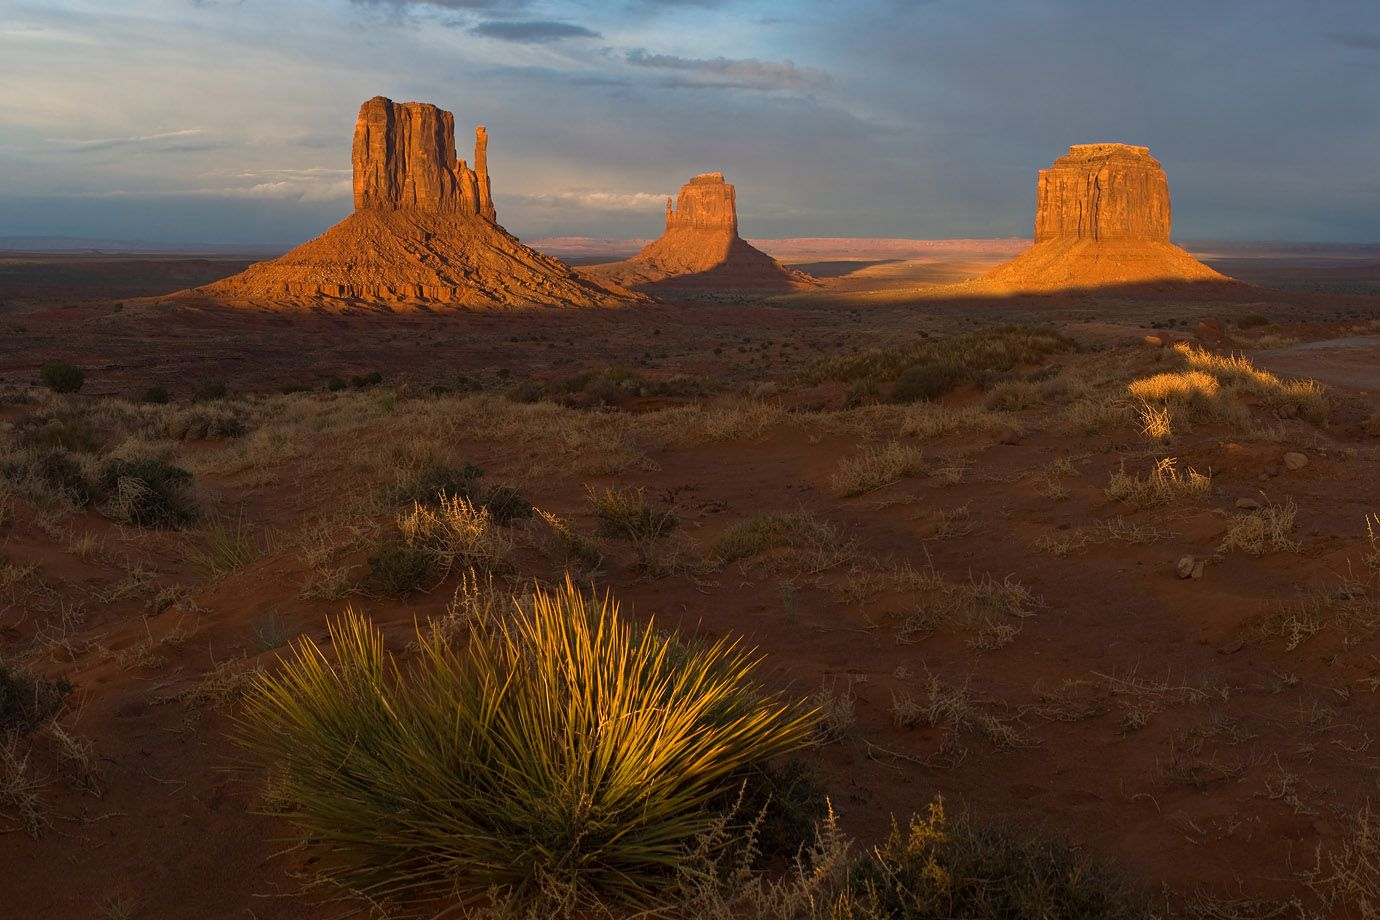 Monument Valley, Colorado Plateau, USA